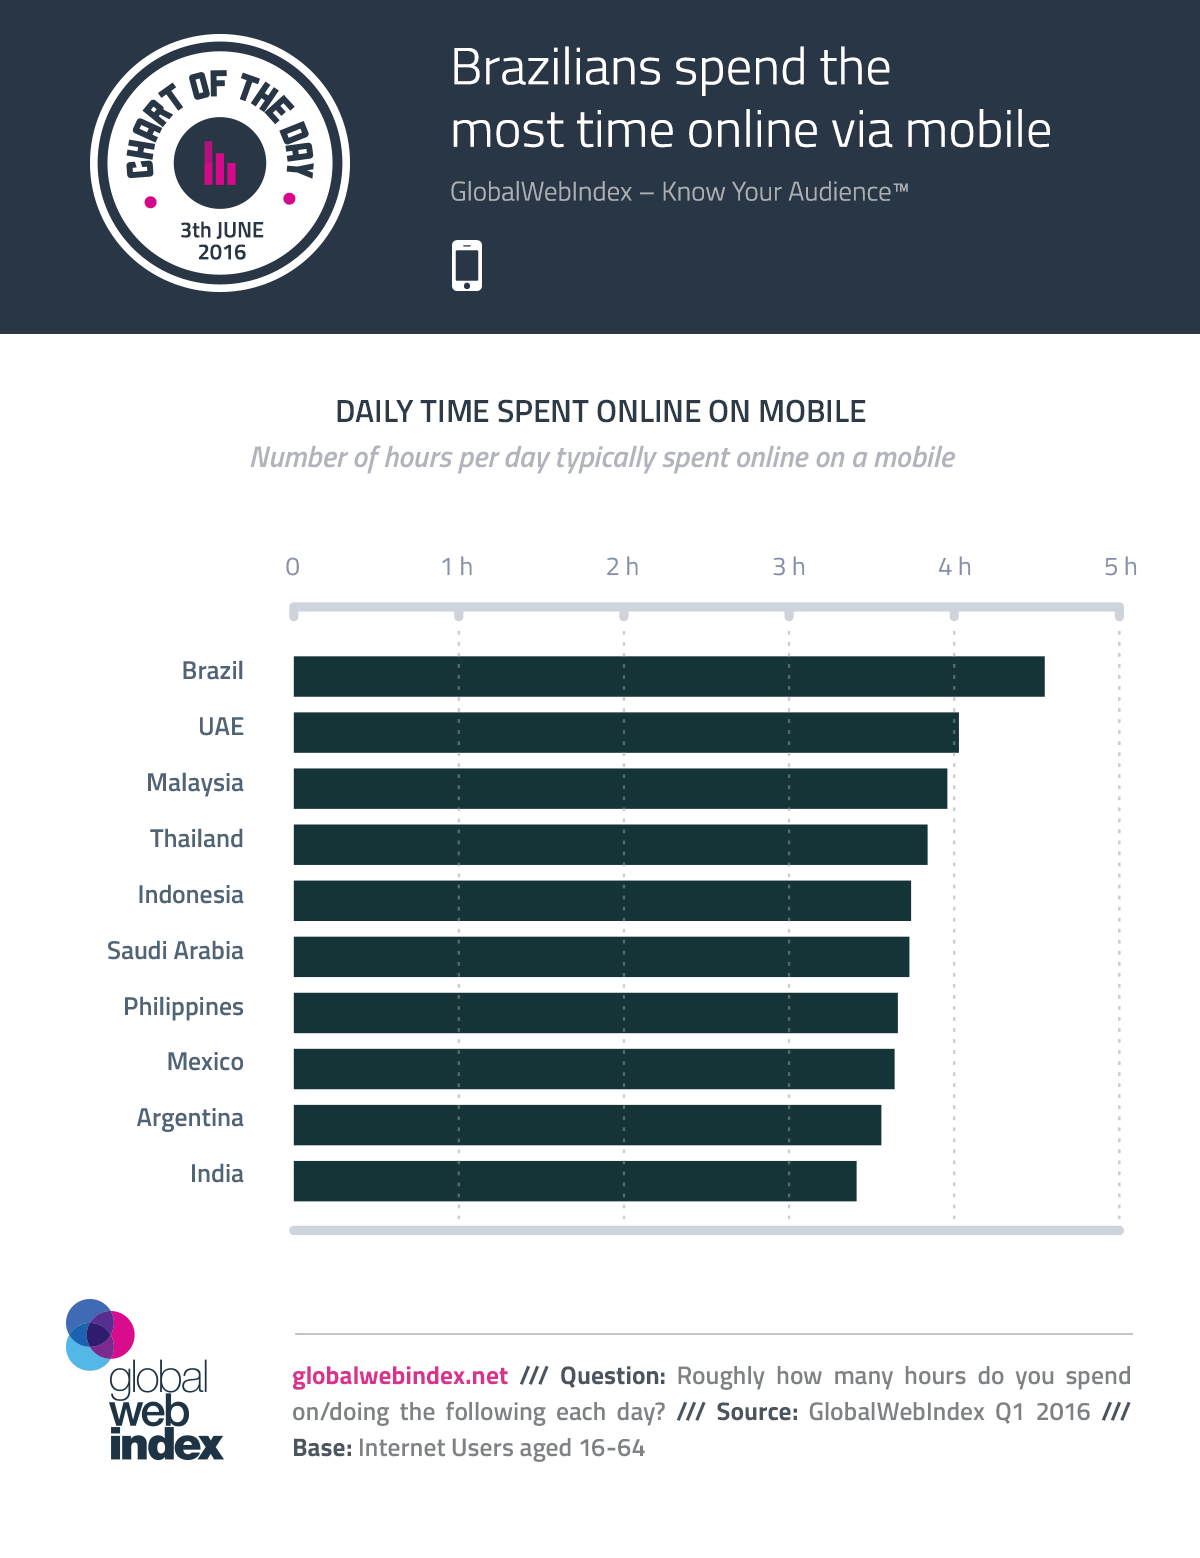 Brazilians spend the most time online via mobile